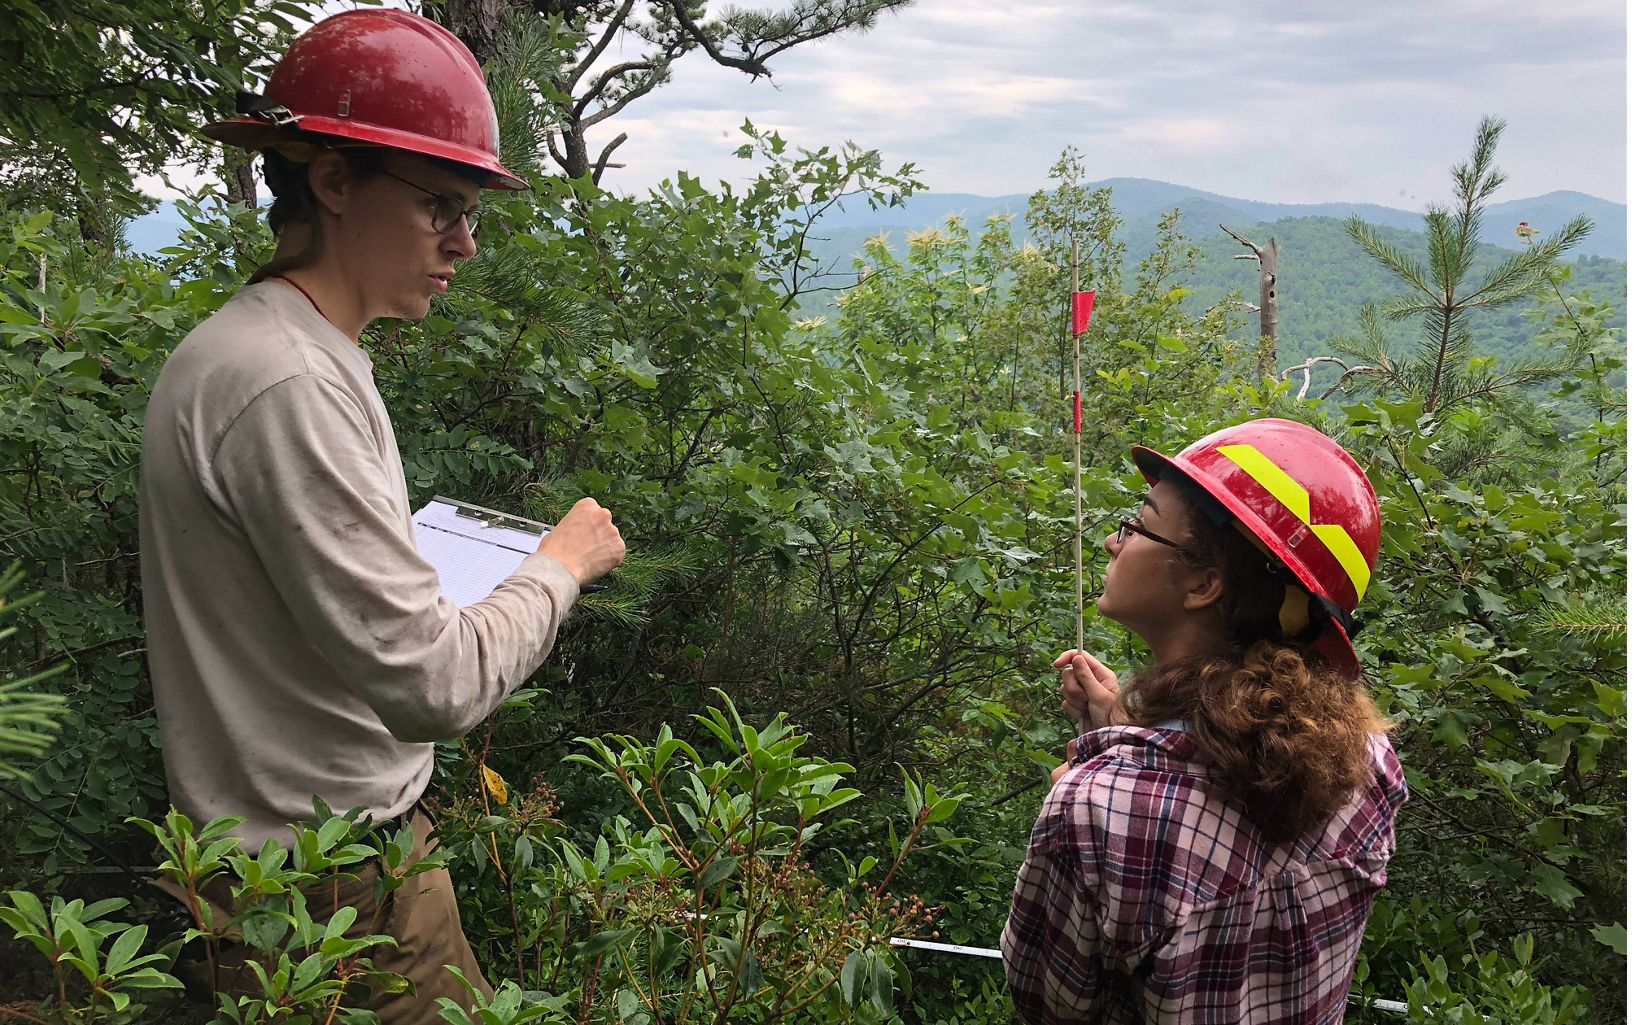 Lane Gibbons (Shenandoah Natl Park, L) and LEAF intern Jasmine Lowitz (R) count stems among a Table Mountain Pine Regeneration site.